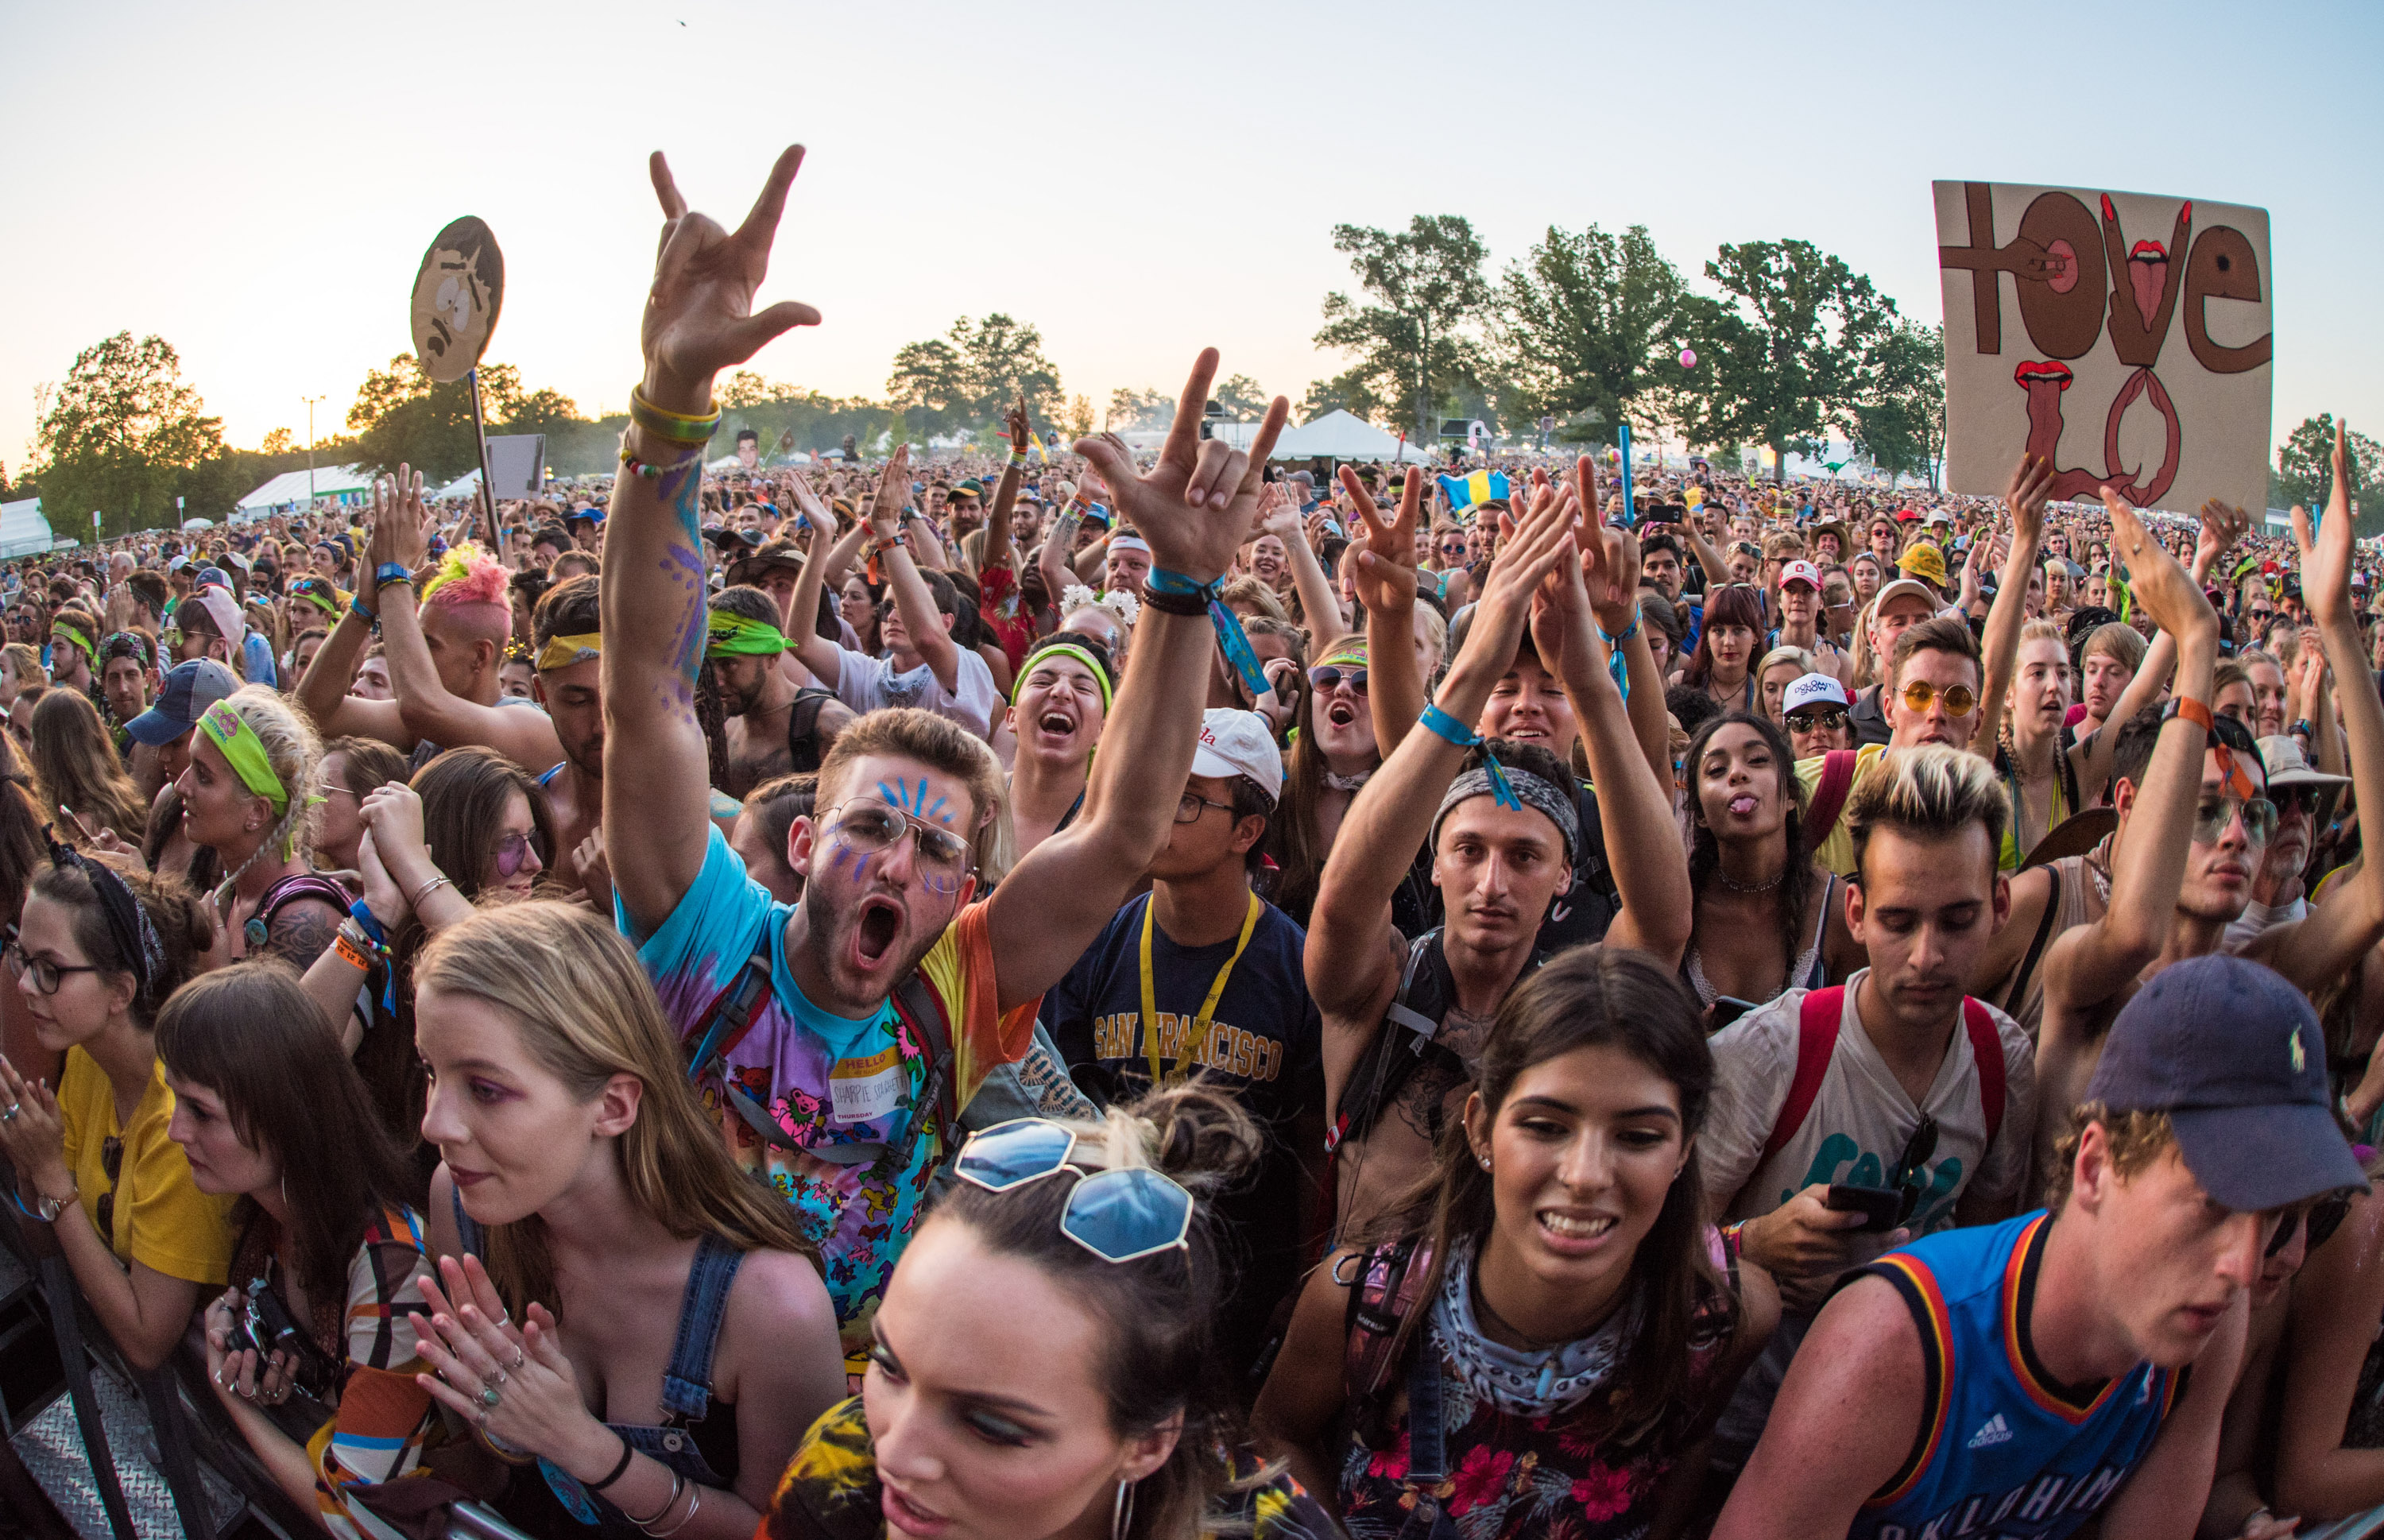 Six Music Festival Predictions to Start the 2020s